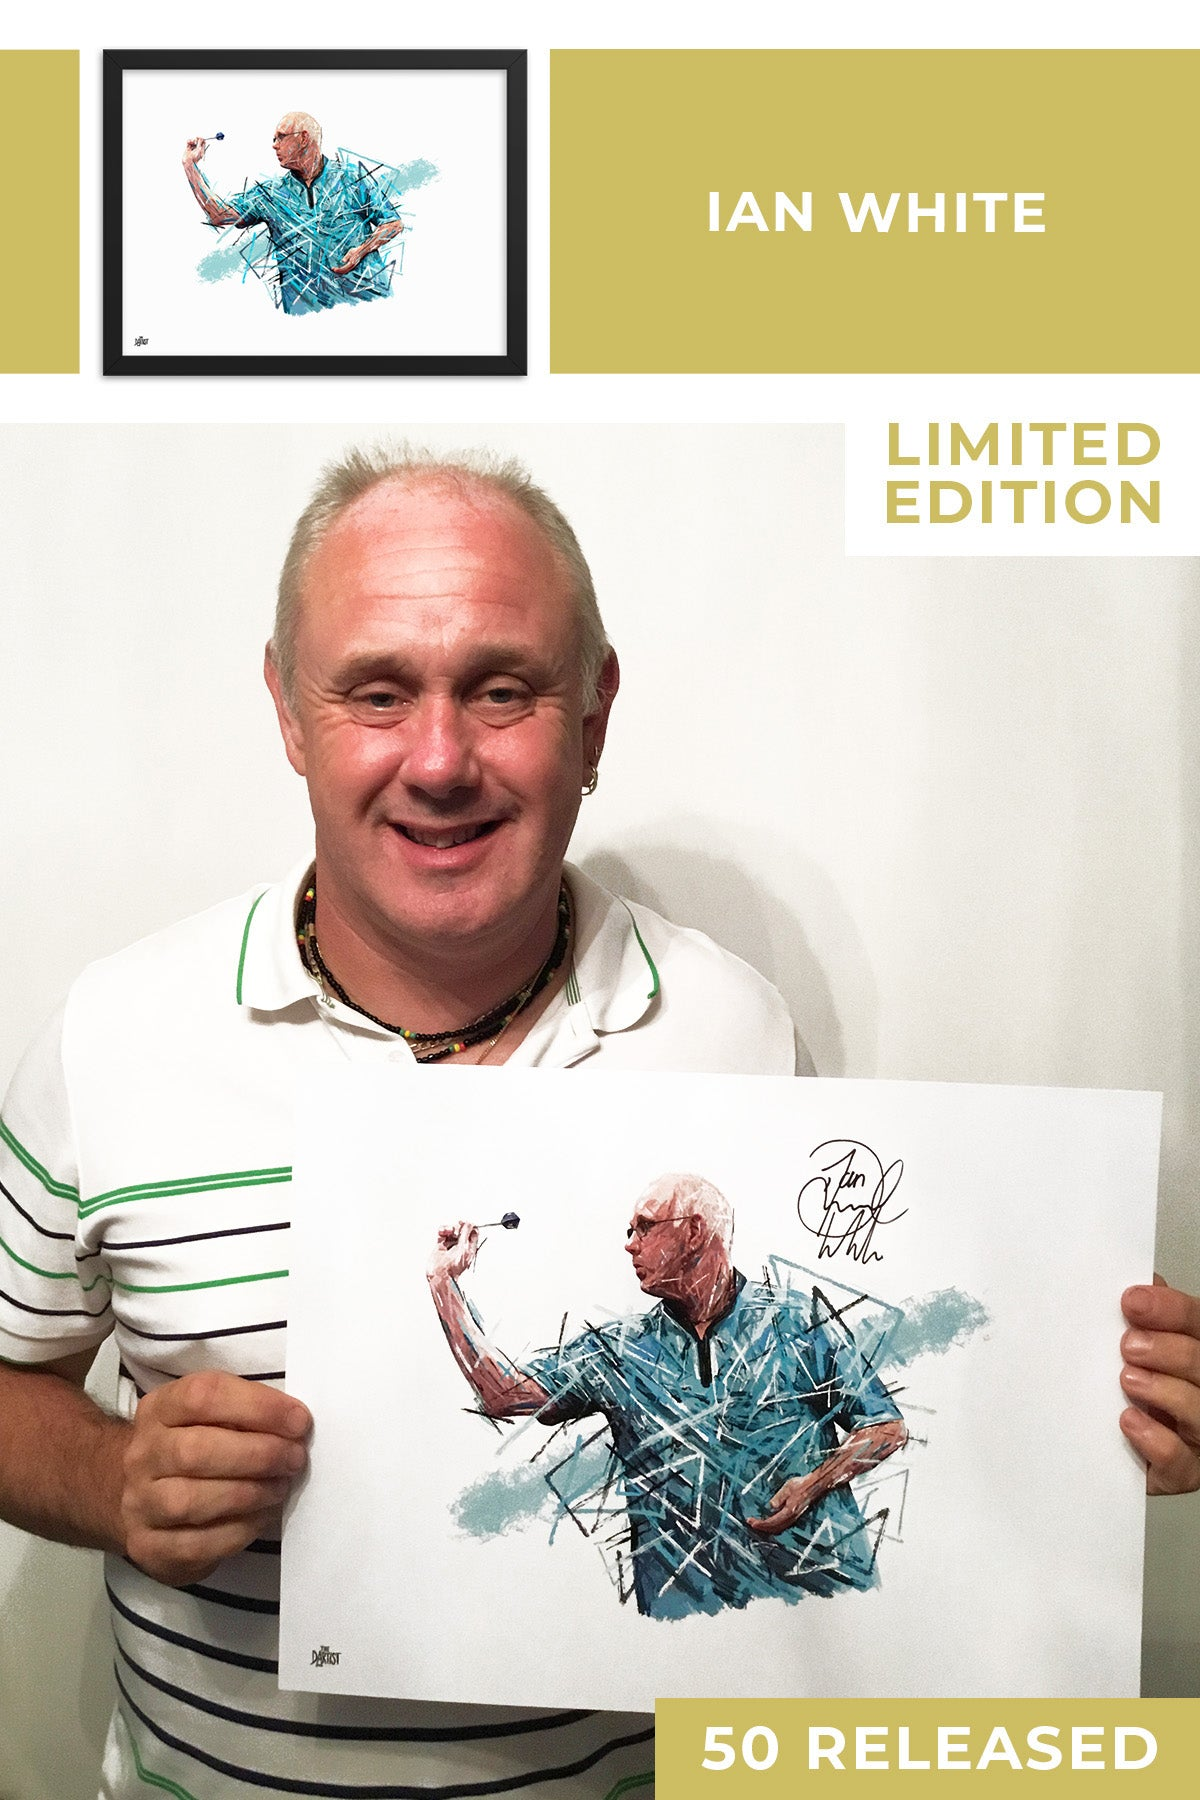 Ian White Limited Edition Signed Art Print - The Dartist